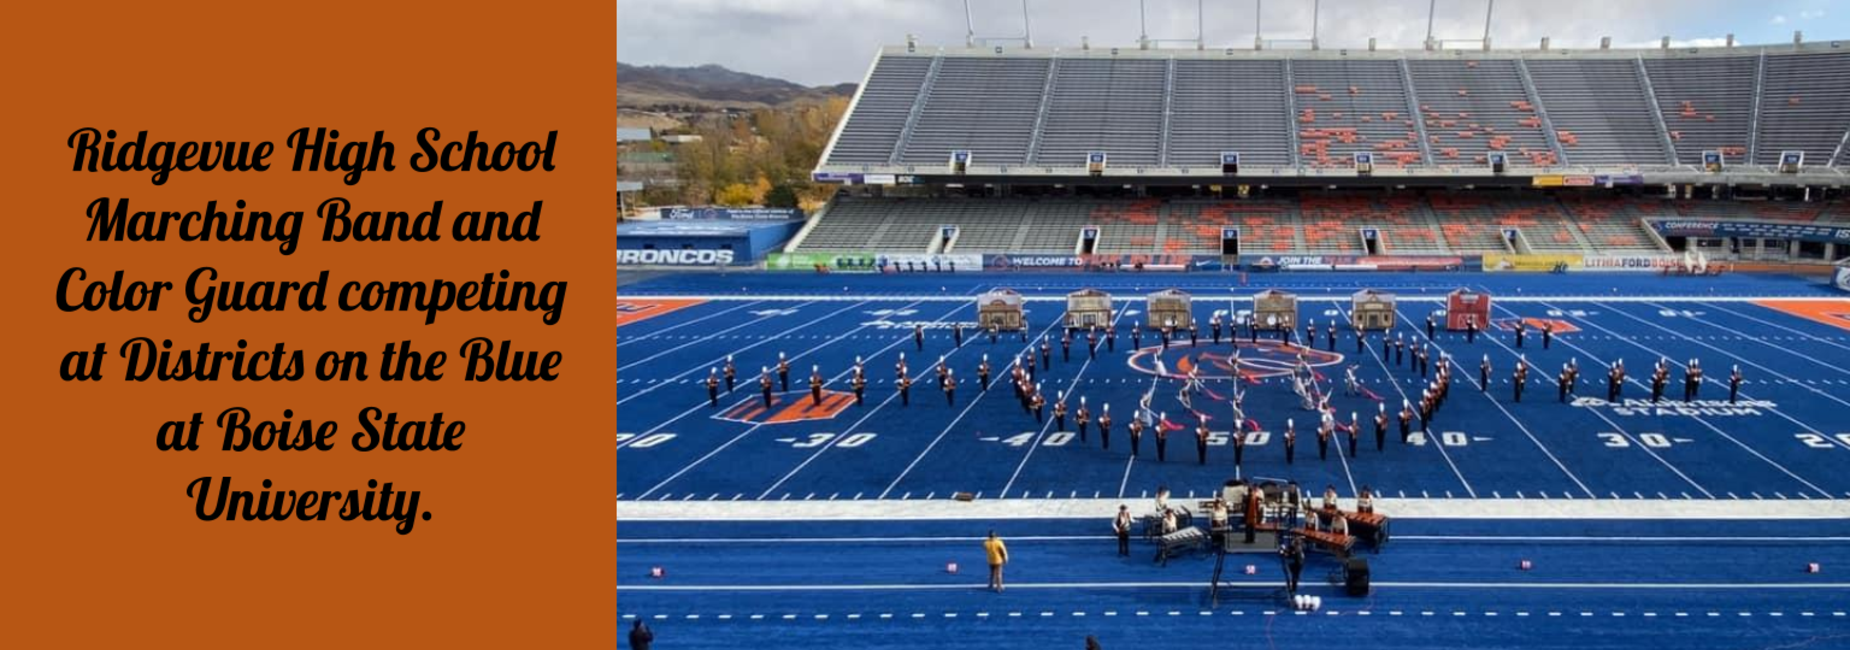 RHS Marching Band at District at Boise State